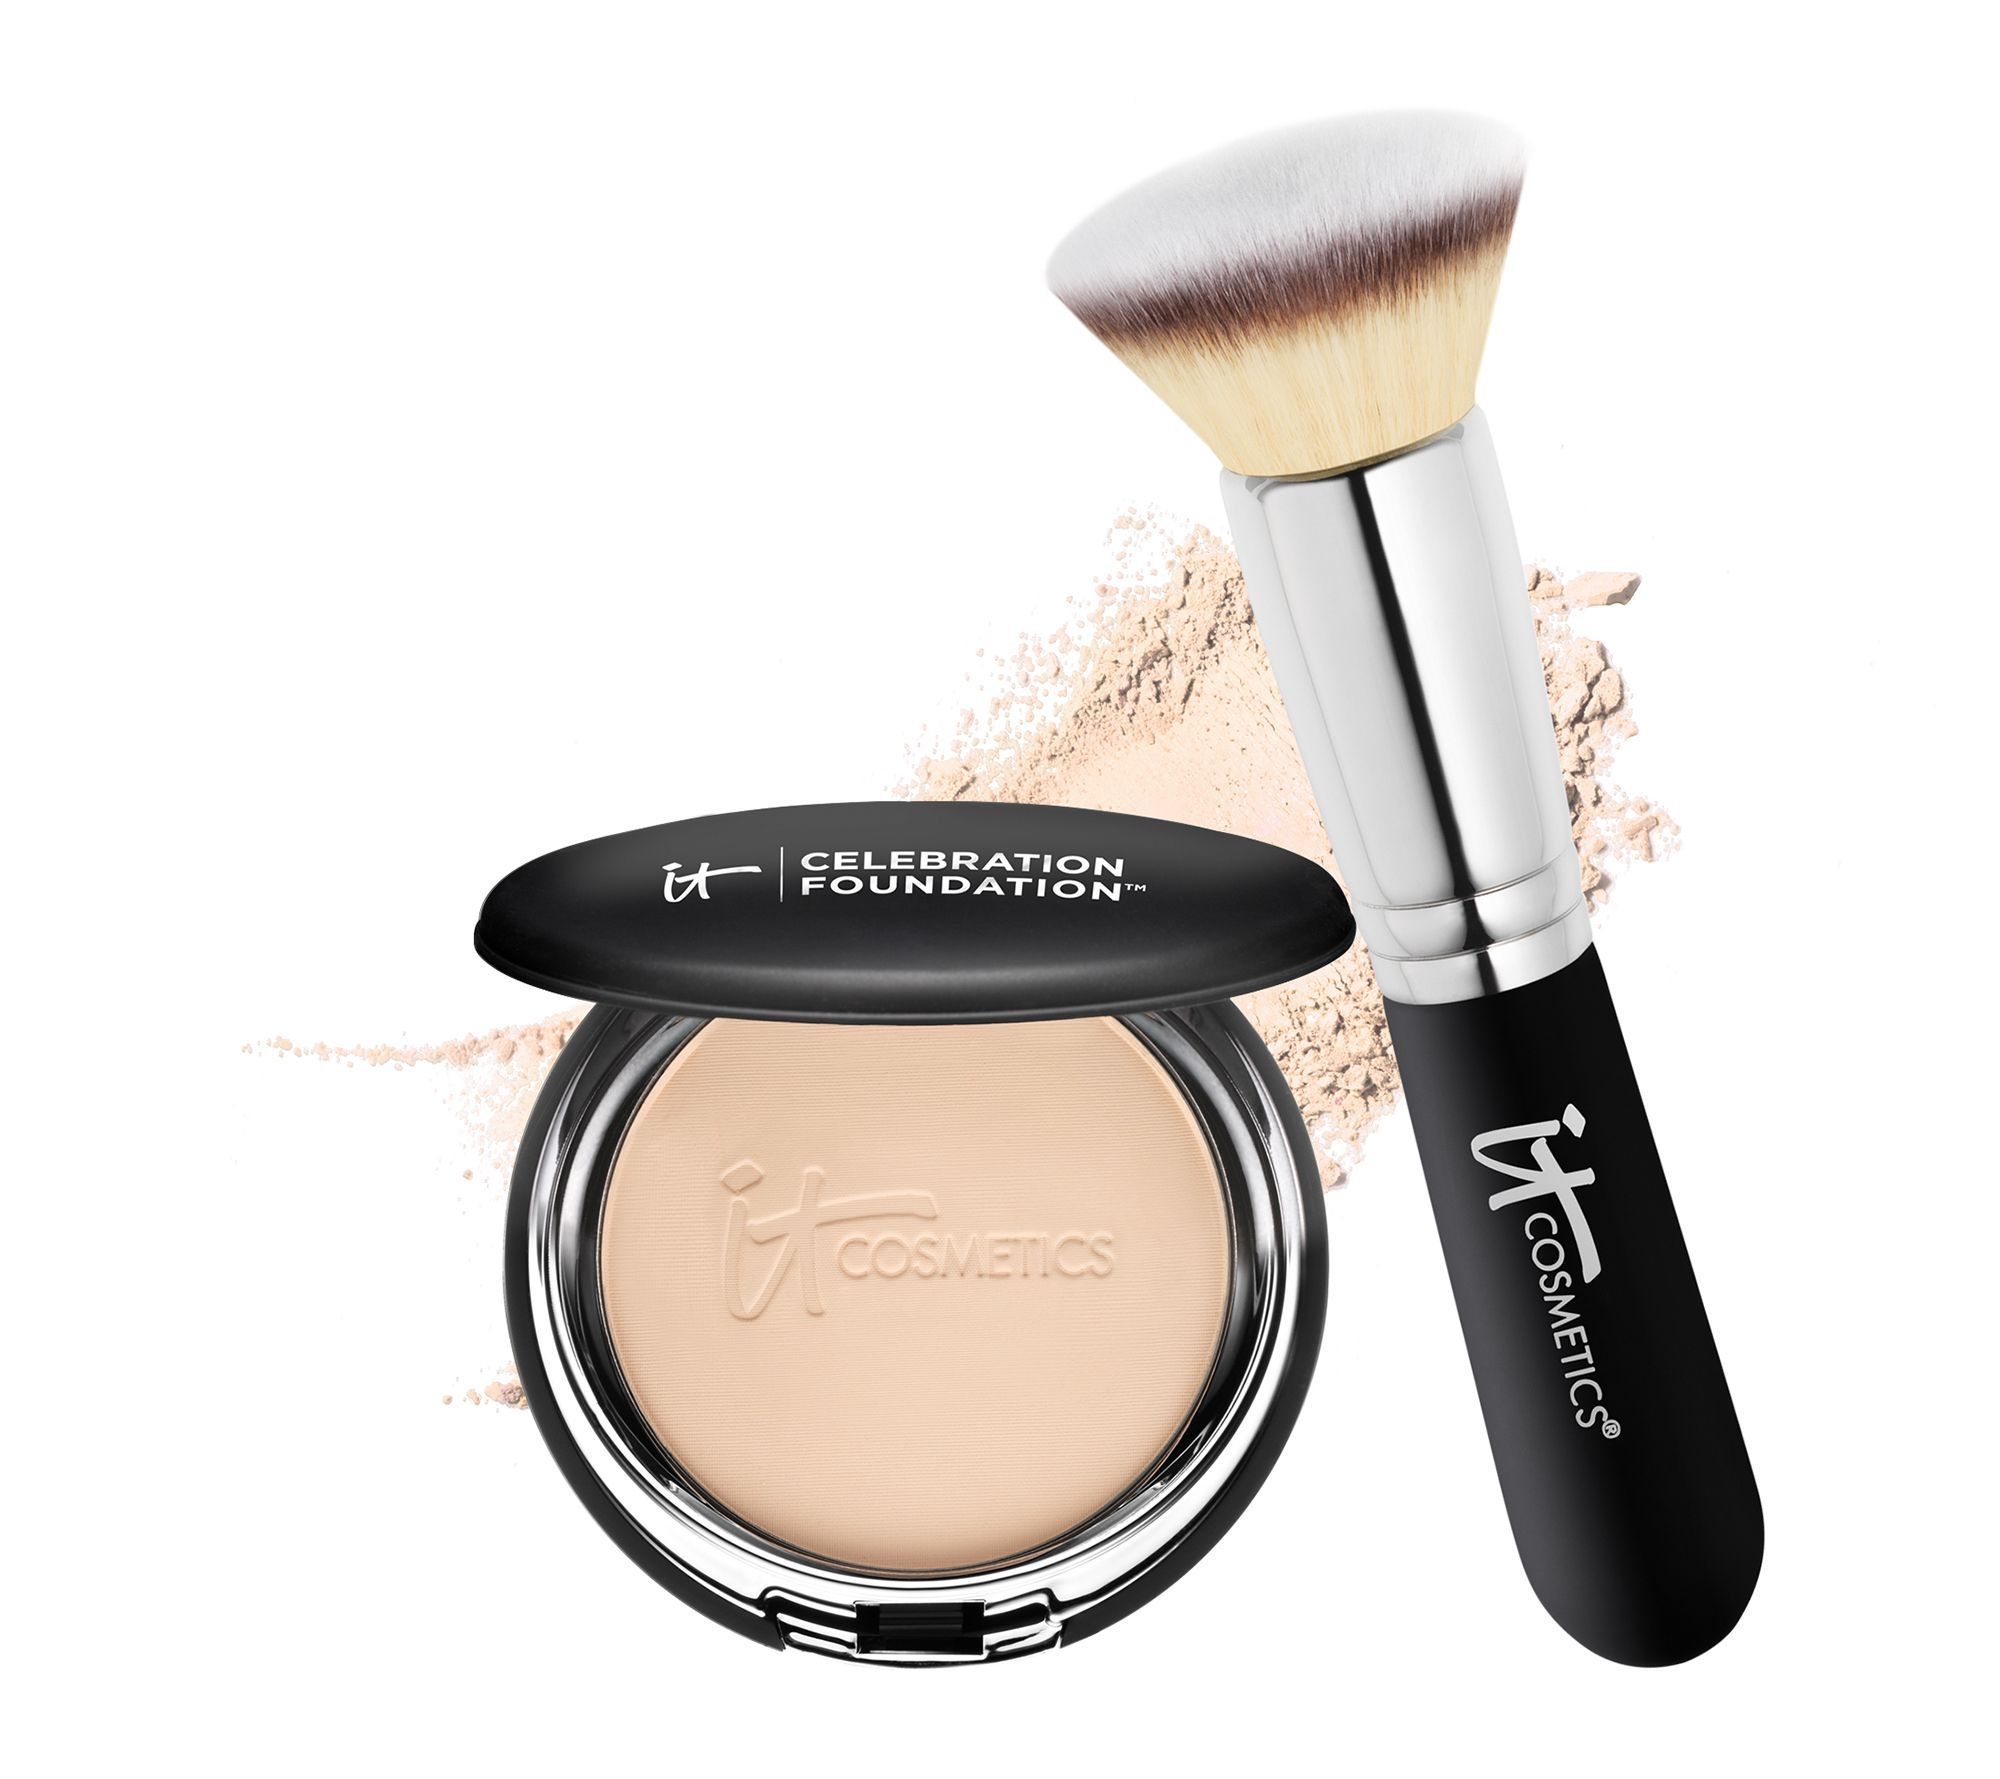 IT Cosmetics AntiAging Celebration Foundation with Brush